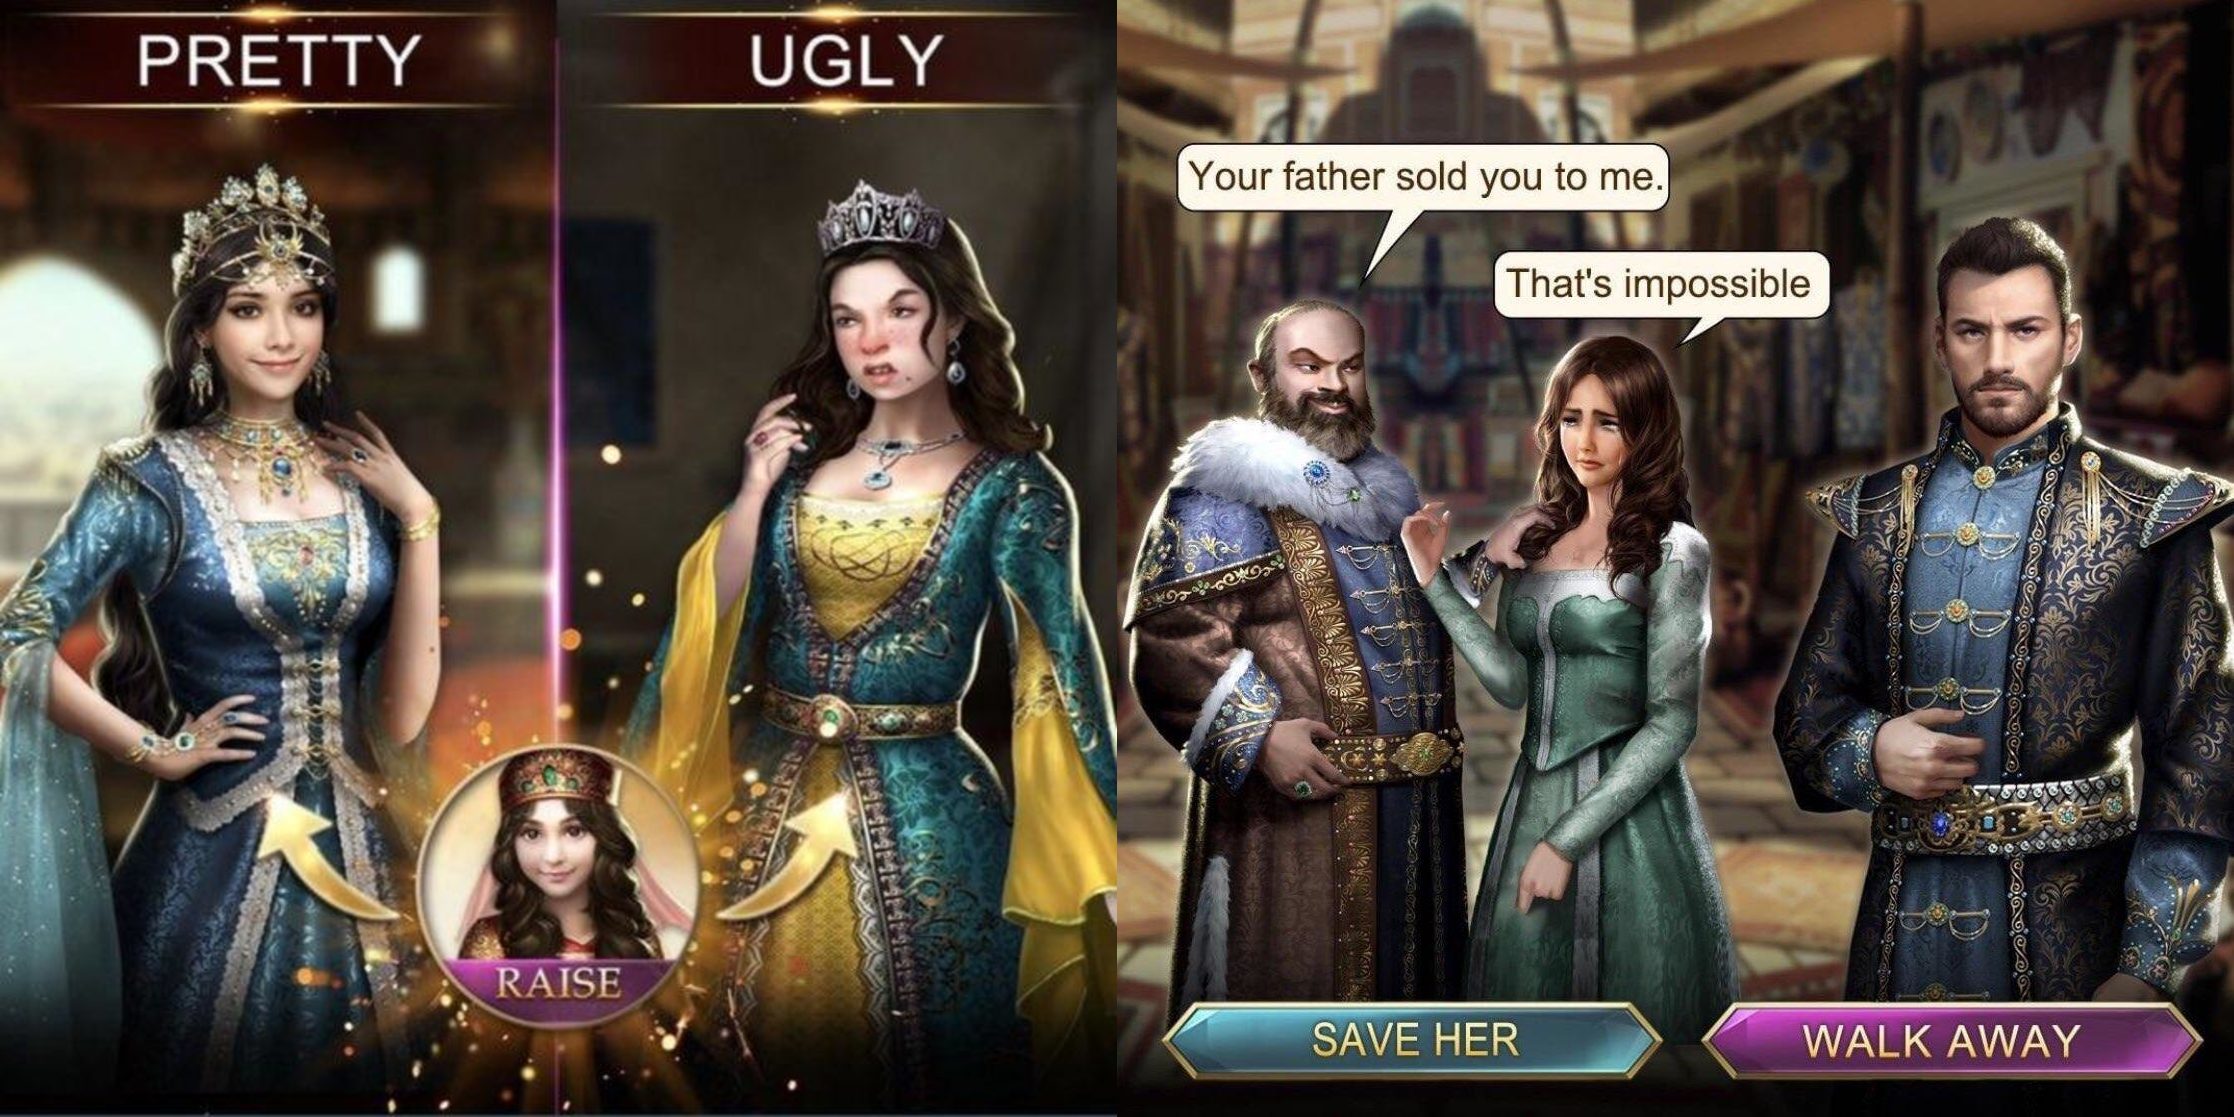 One of many strange Game of Sultans ads